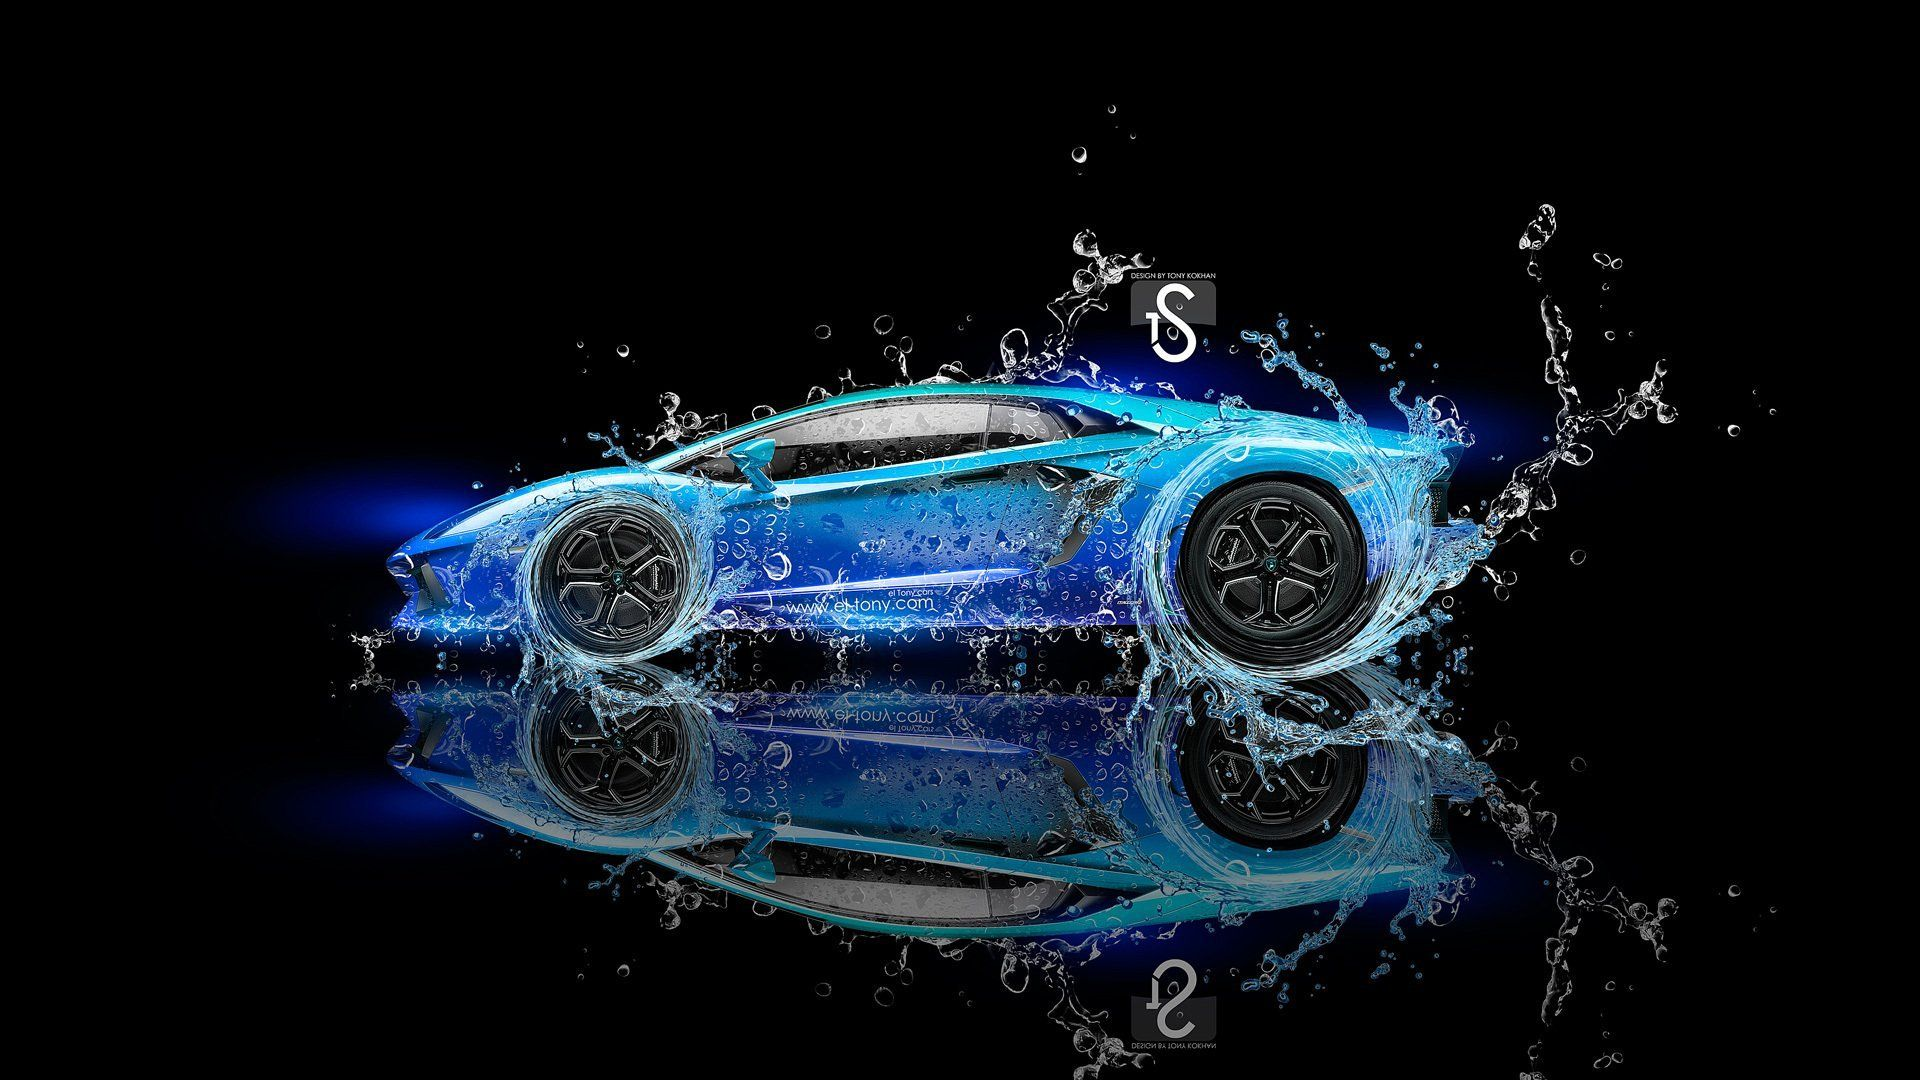 Superior Lamborghini Aventador Water Fantasy Neon Blue El Tony Cars Tony Kokhan  Design Black Lamborghini Water Effects Black Background Blue Neon Neon  Photoshop HD ...